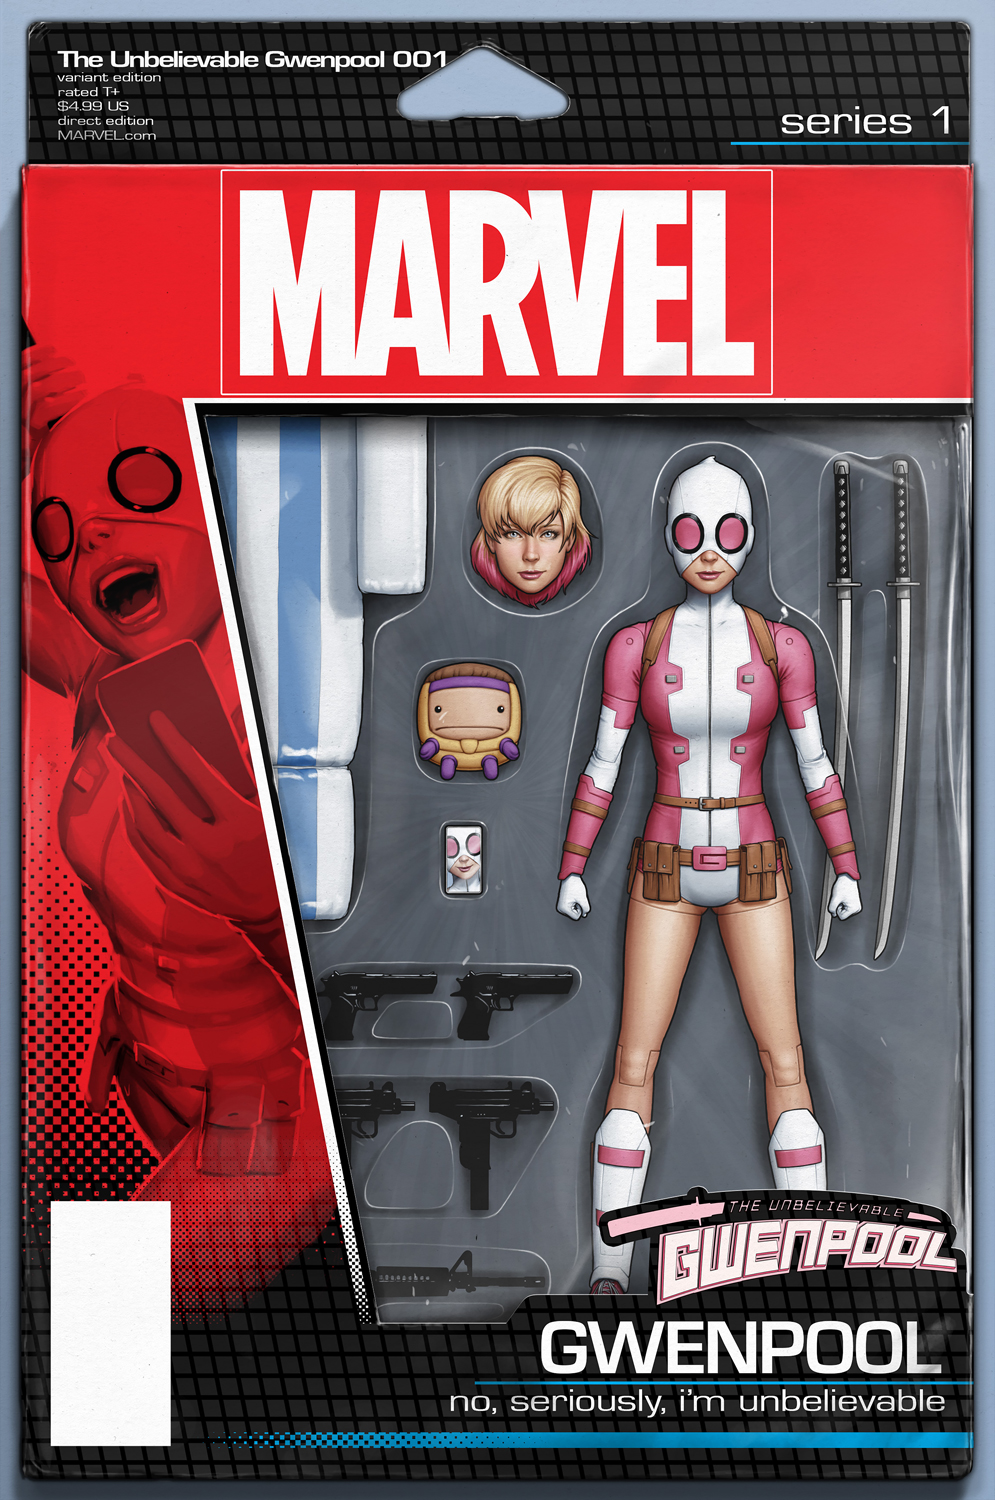 The Unbelievable Gwenpool!